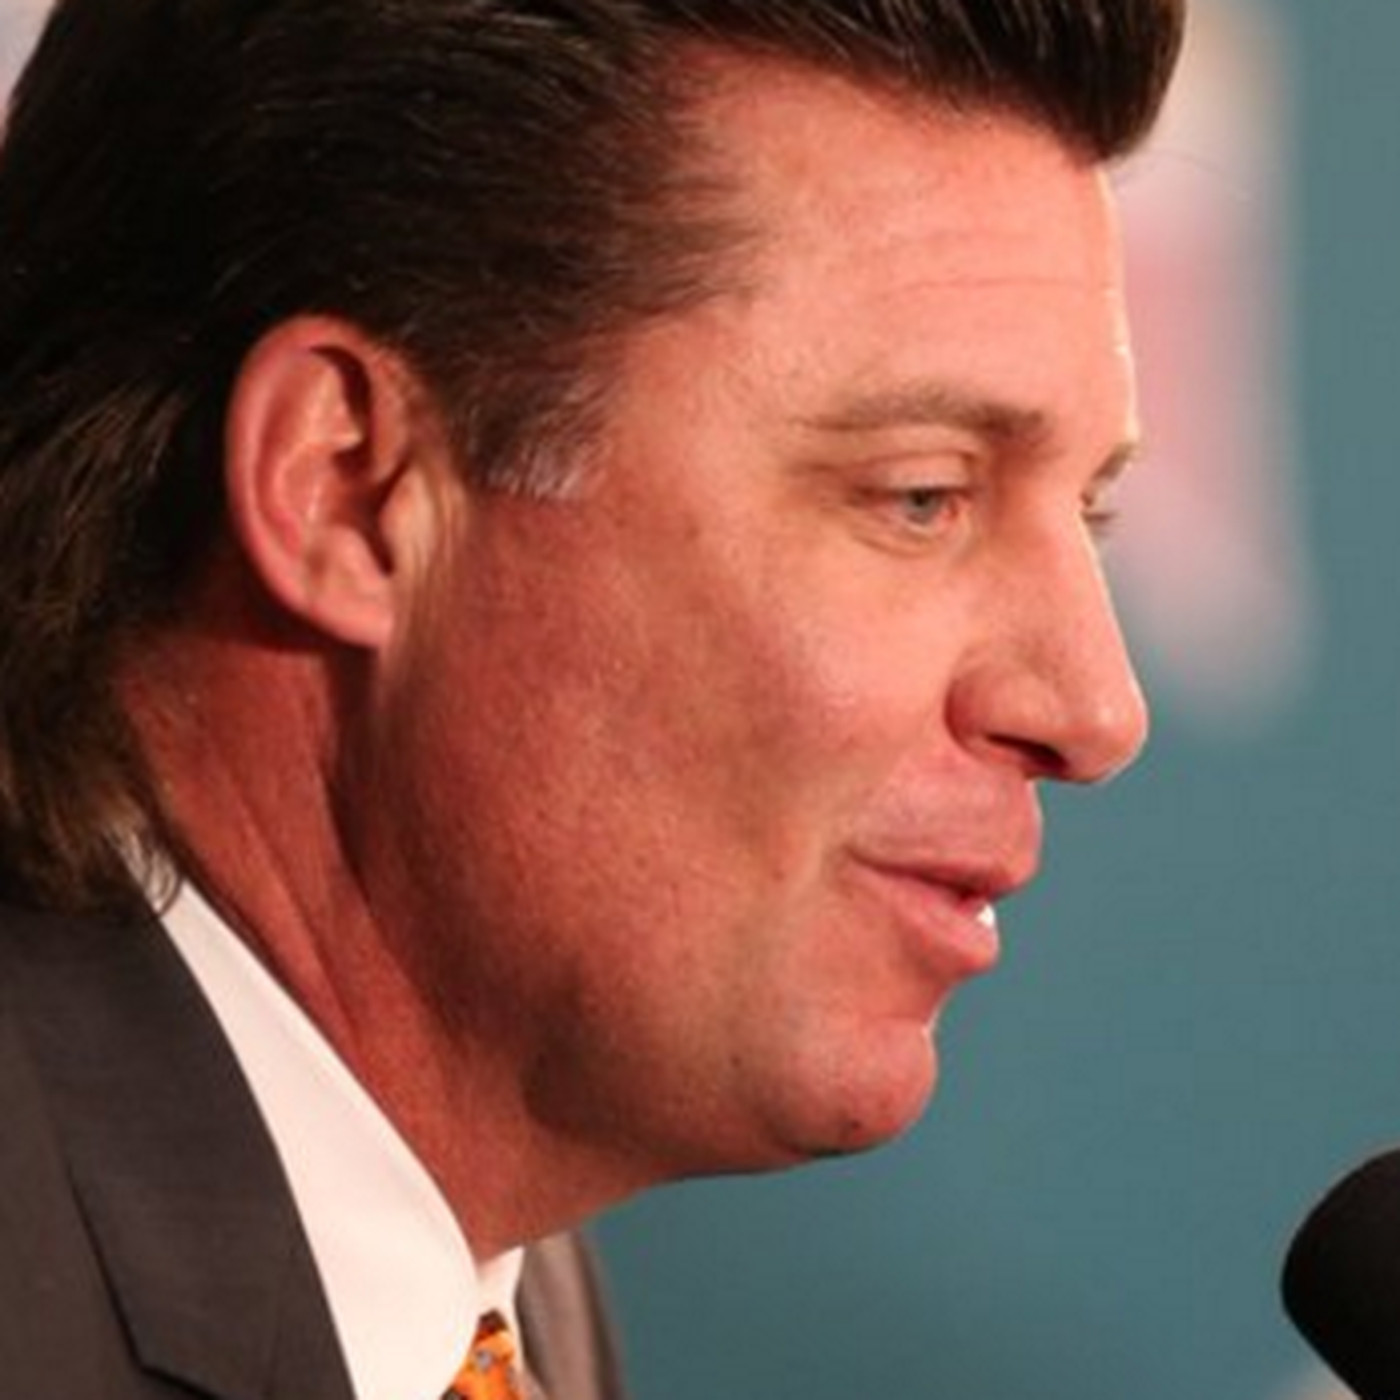 Oklahoma State S Mike Gundy Has A Mullet You Must Know